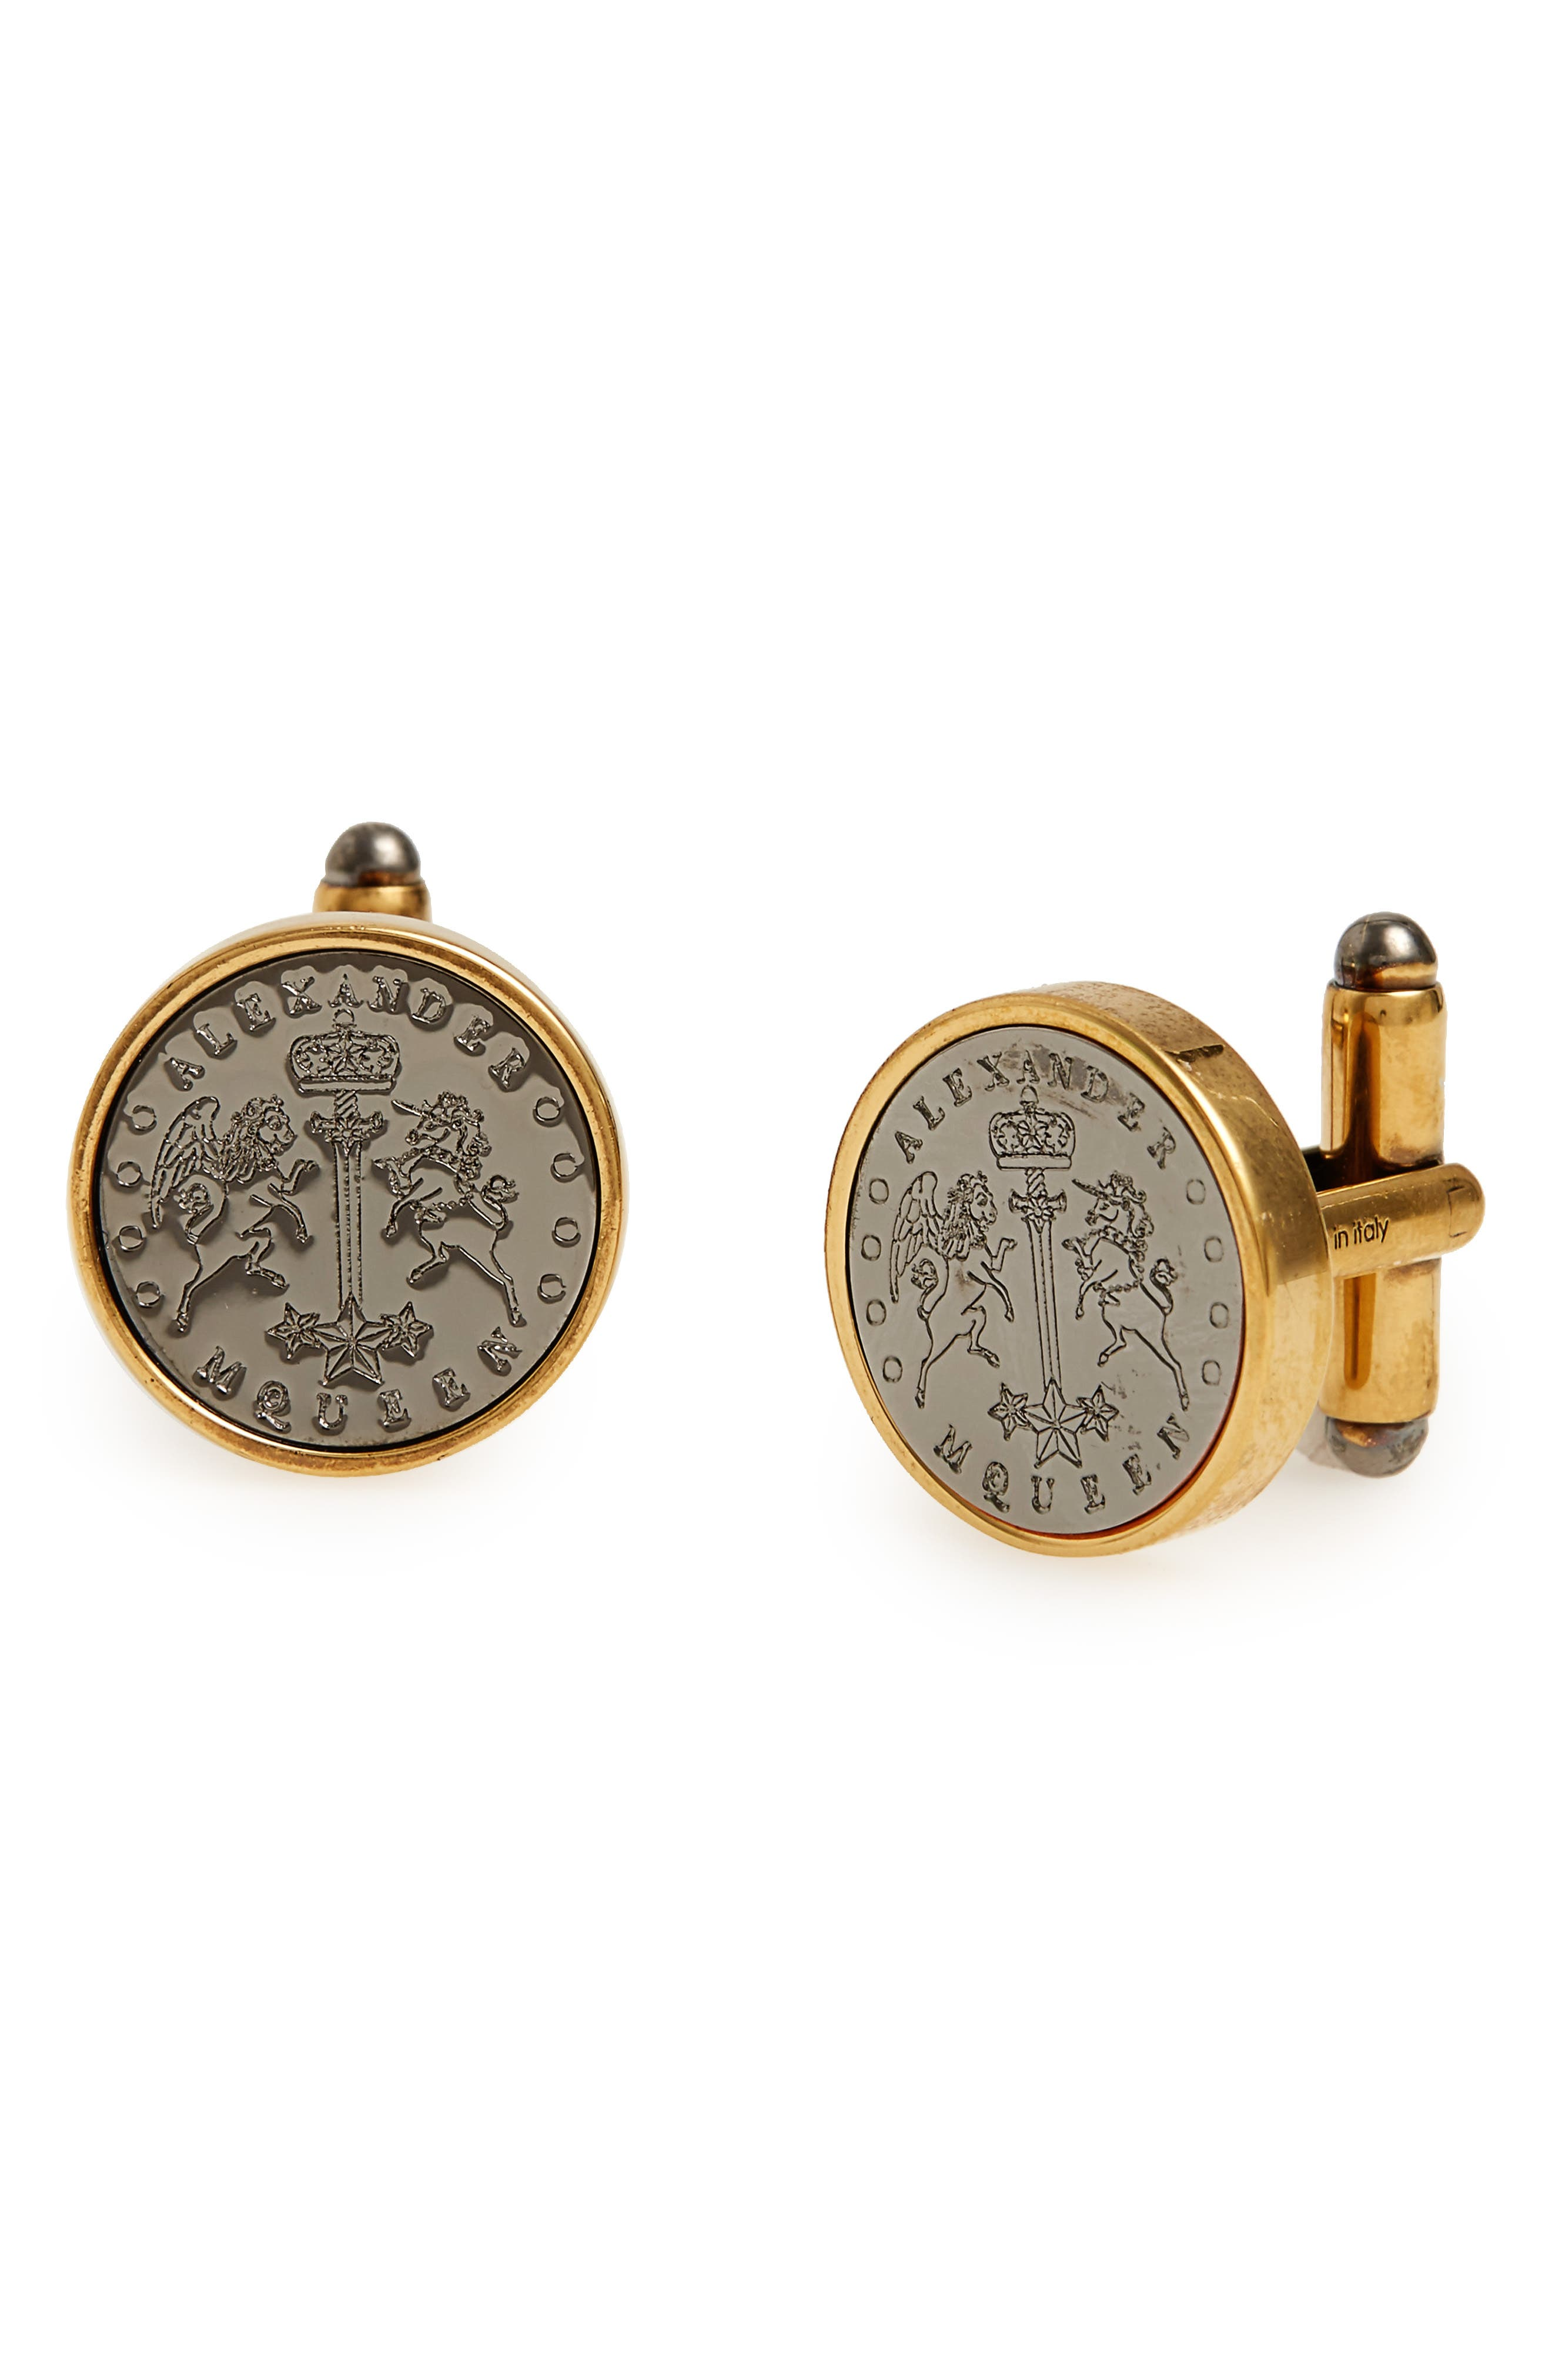 Signet Cuff Links,                         Main,                         color, Gold/ Silver